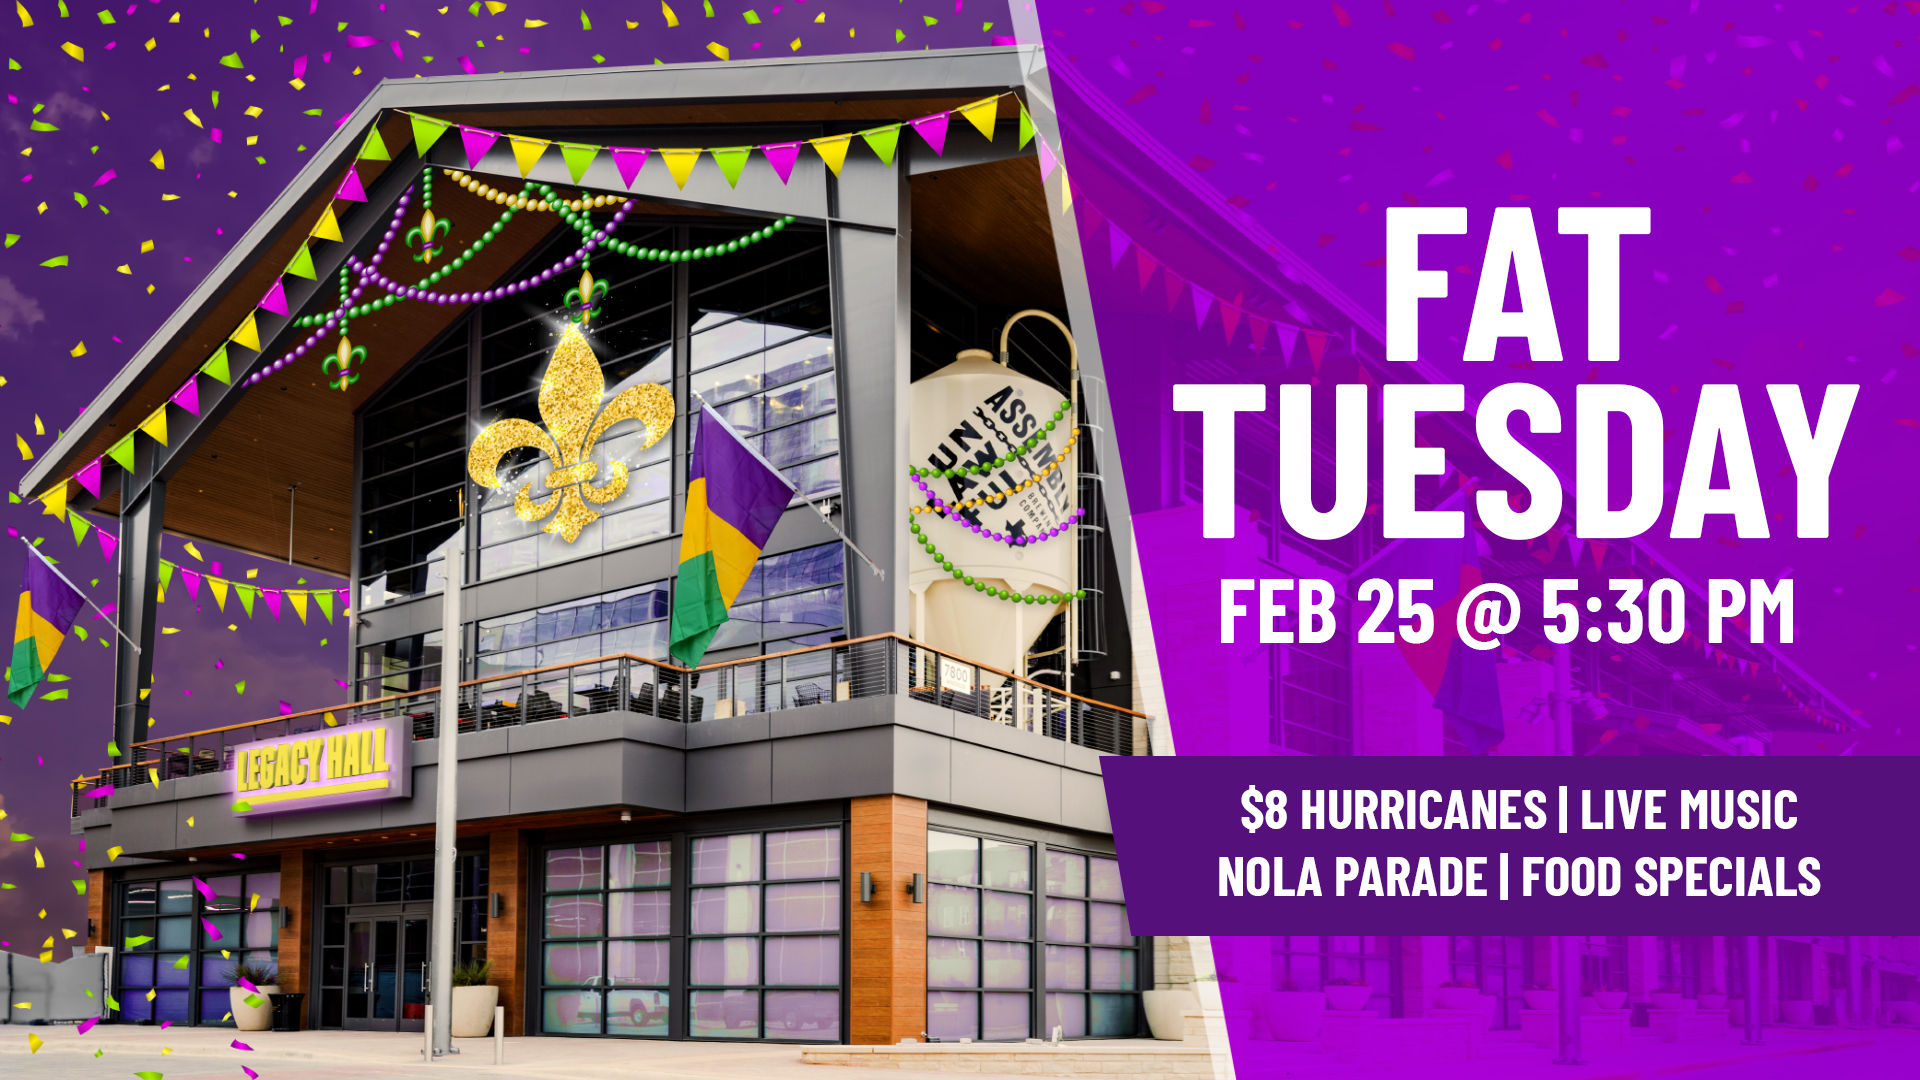 Fat Tuesday at Legacy Hall - hero